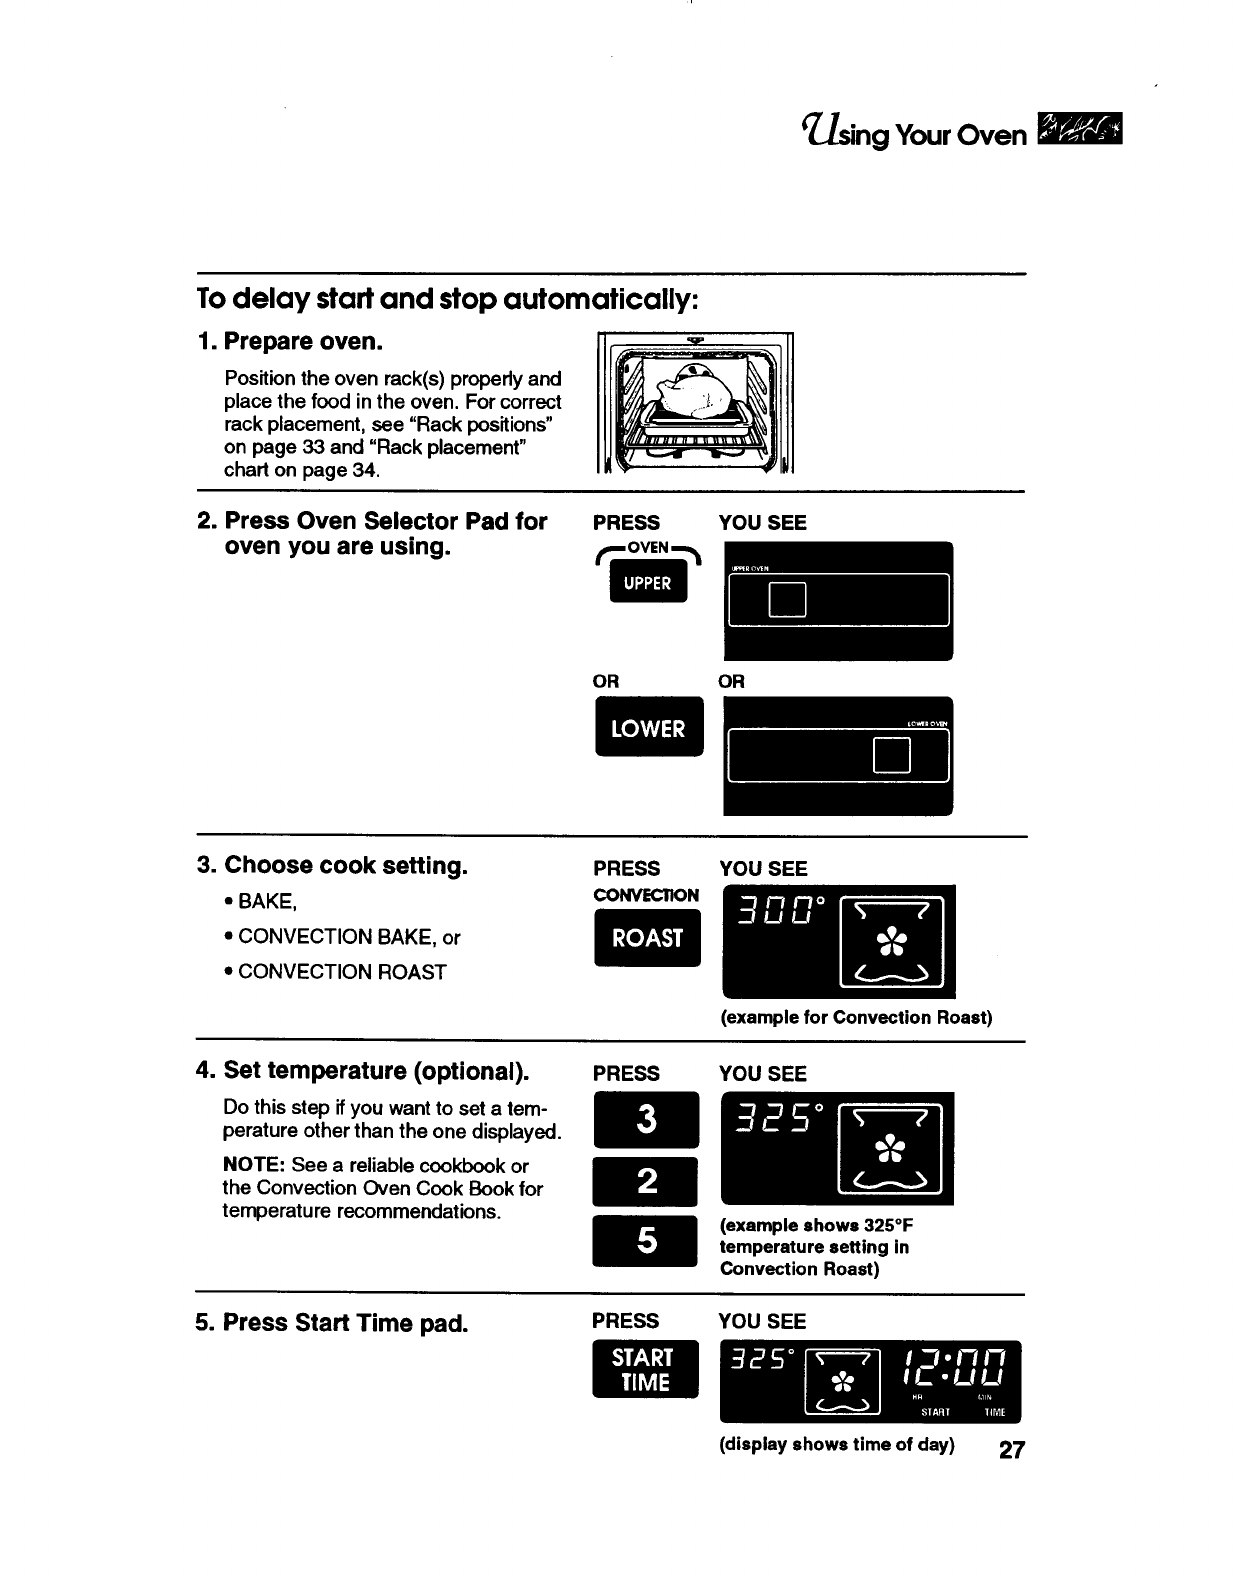 Page 27 of KitchenAid Convection Oven KEBS208B User Guide